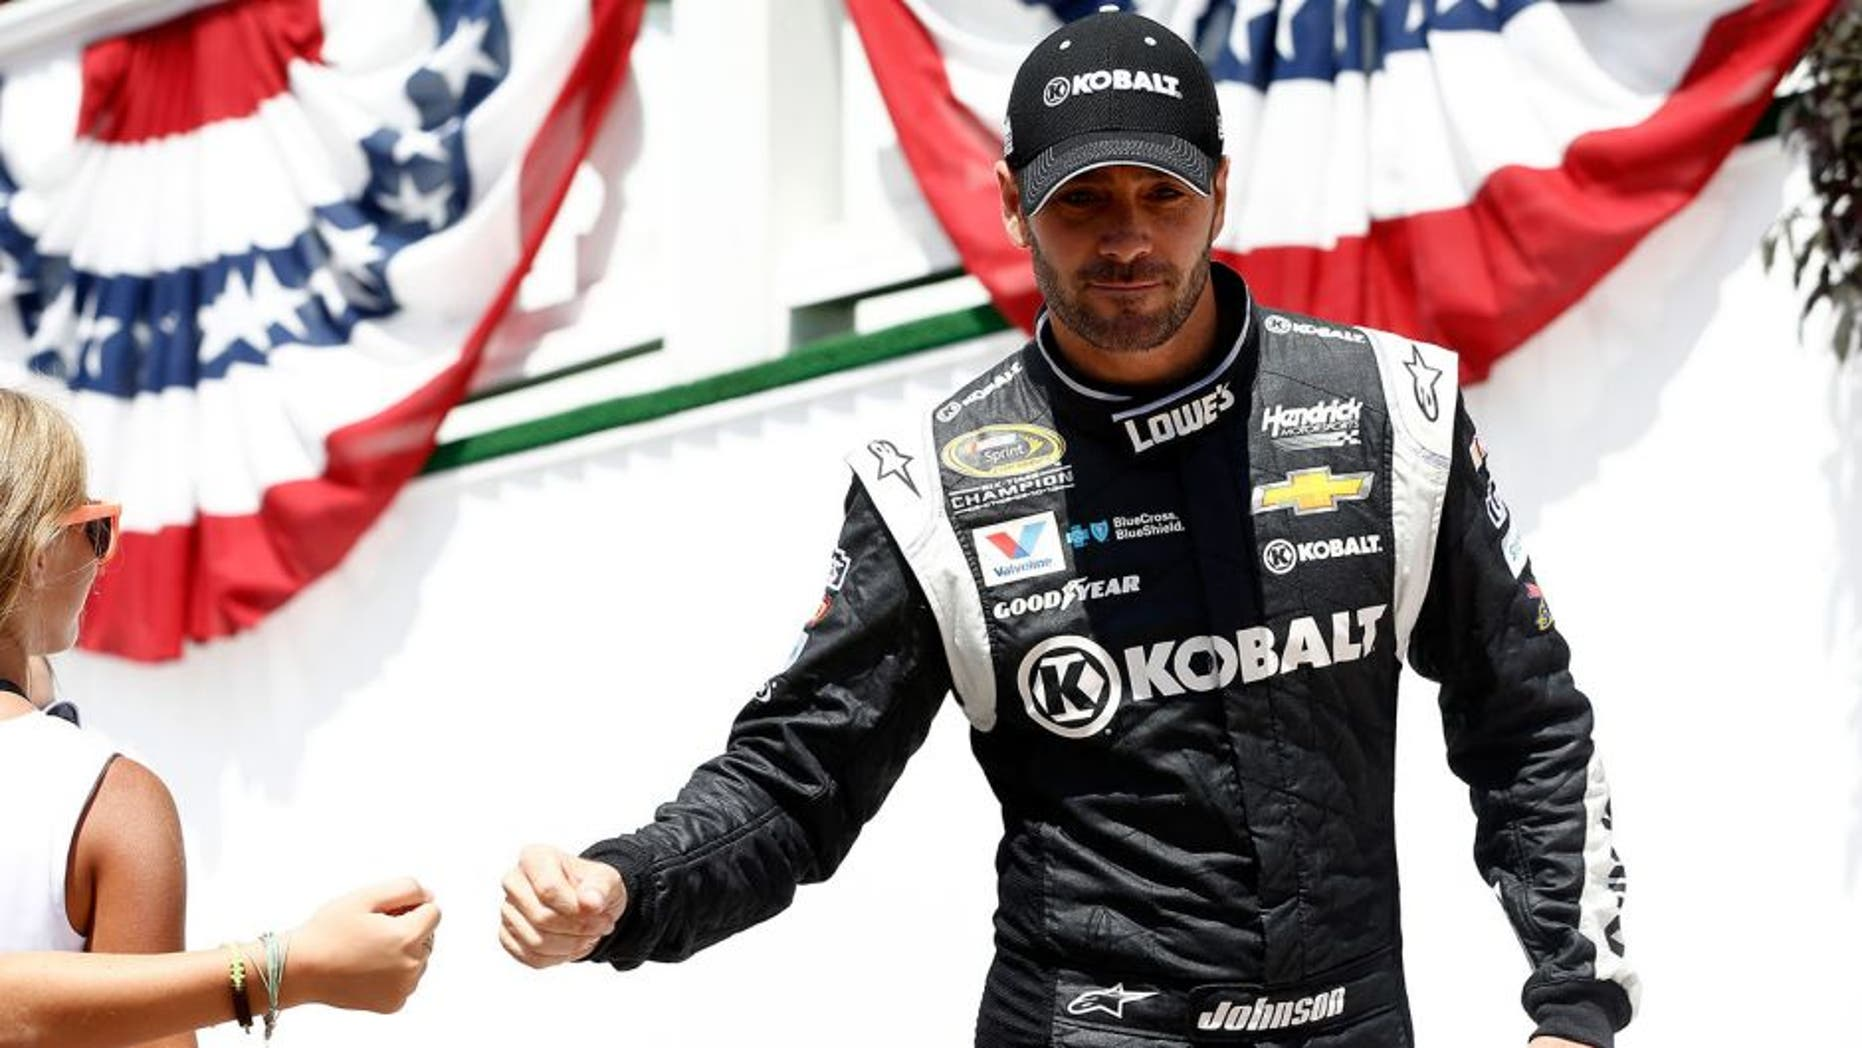 LONG POND, PA - AUGUST 02: Jimmie Johnson, driver of the #48 Kobalt Tools Chevrolet, takes part in pre-race ceremonies for the NASCAR Sprint Cup Series Windows 10 400 at Pocono Raceway on August 2, 2015 in Long Pond, Pennsylvania. (Photo by Jeff Zelevansky/NASCAR via Getty Images)